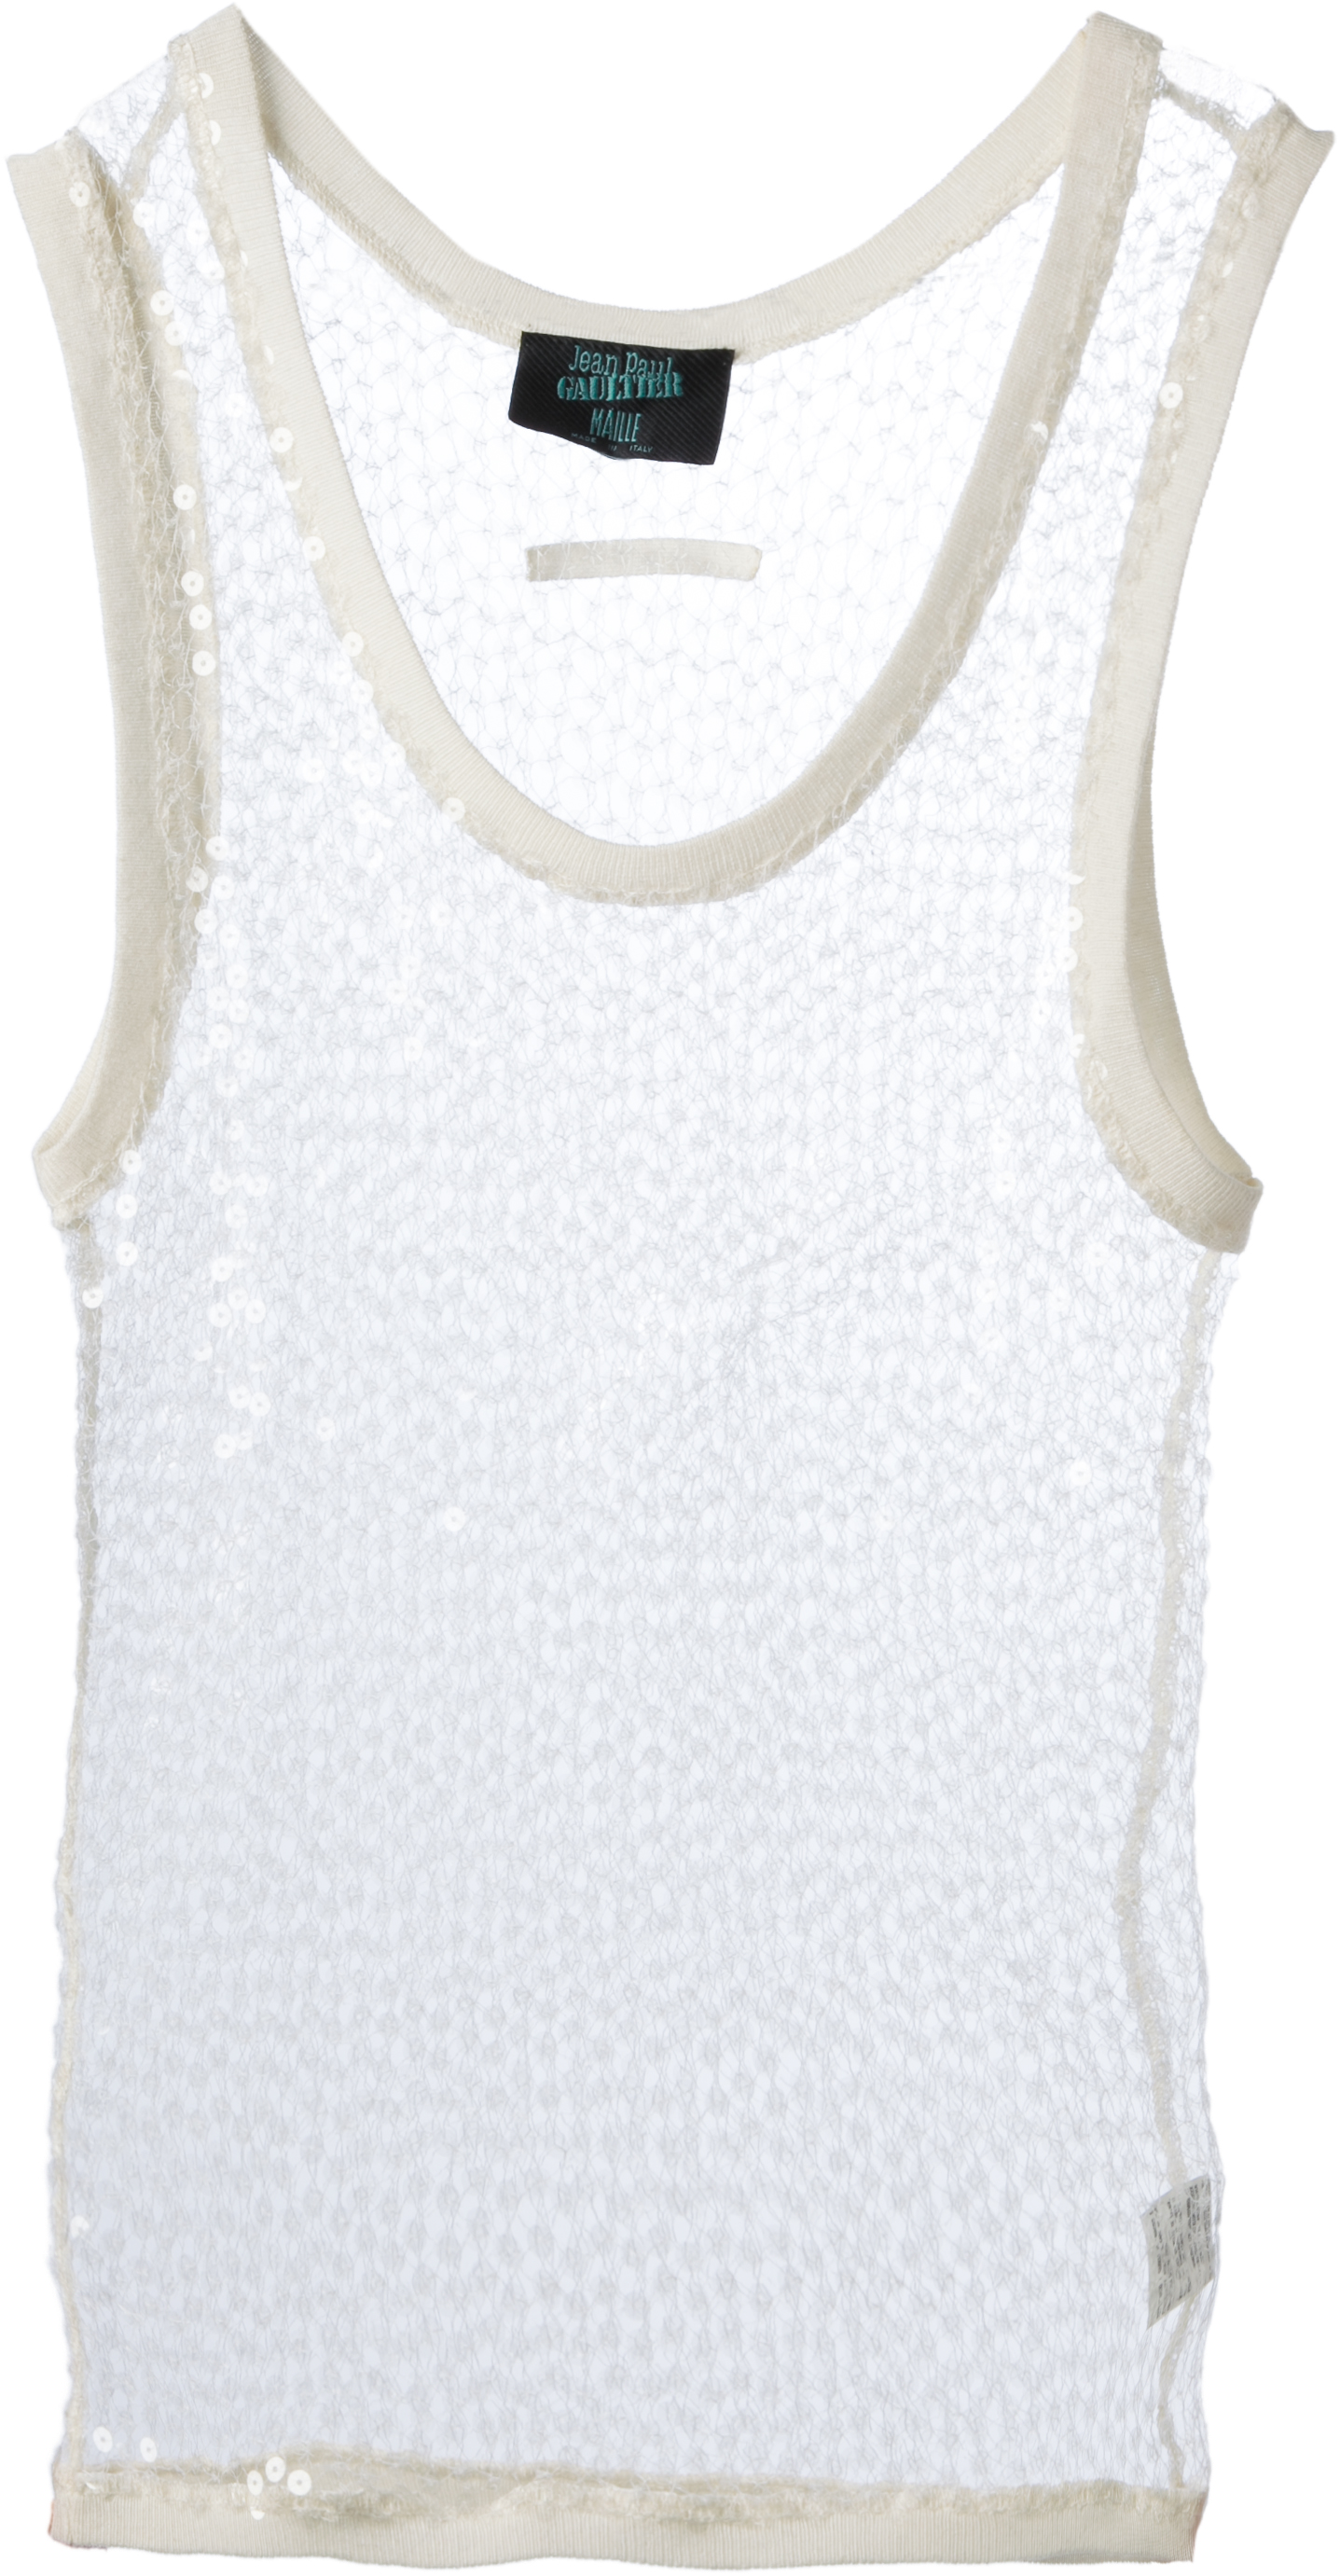 Jean Paul Gaultier sequin vest from SS90 collection, Rap'sody in Blue